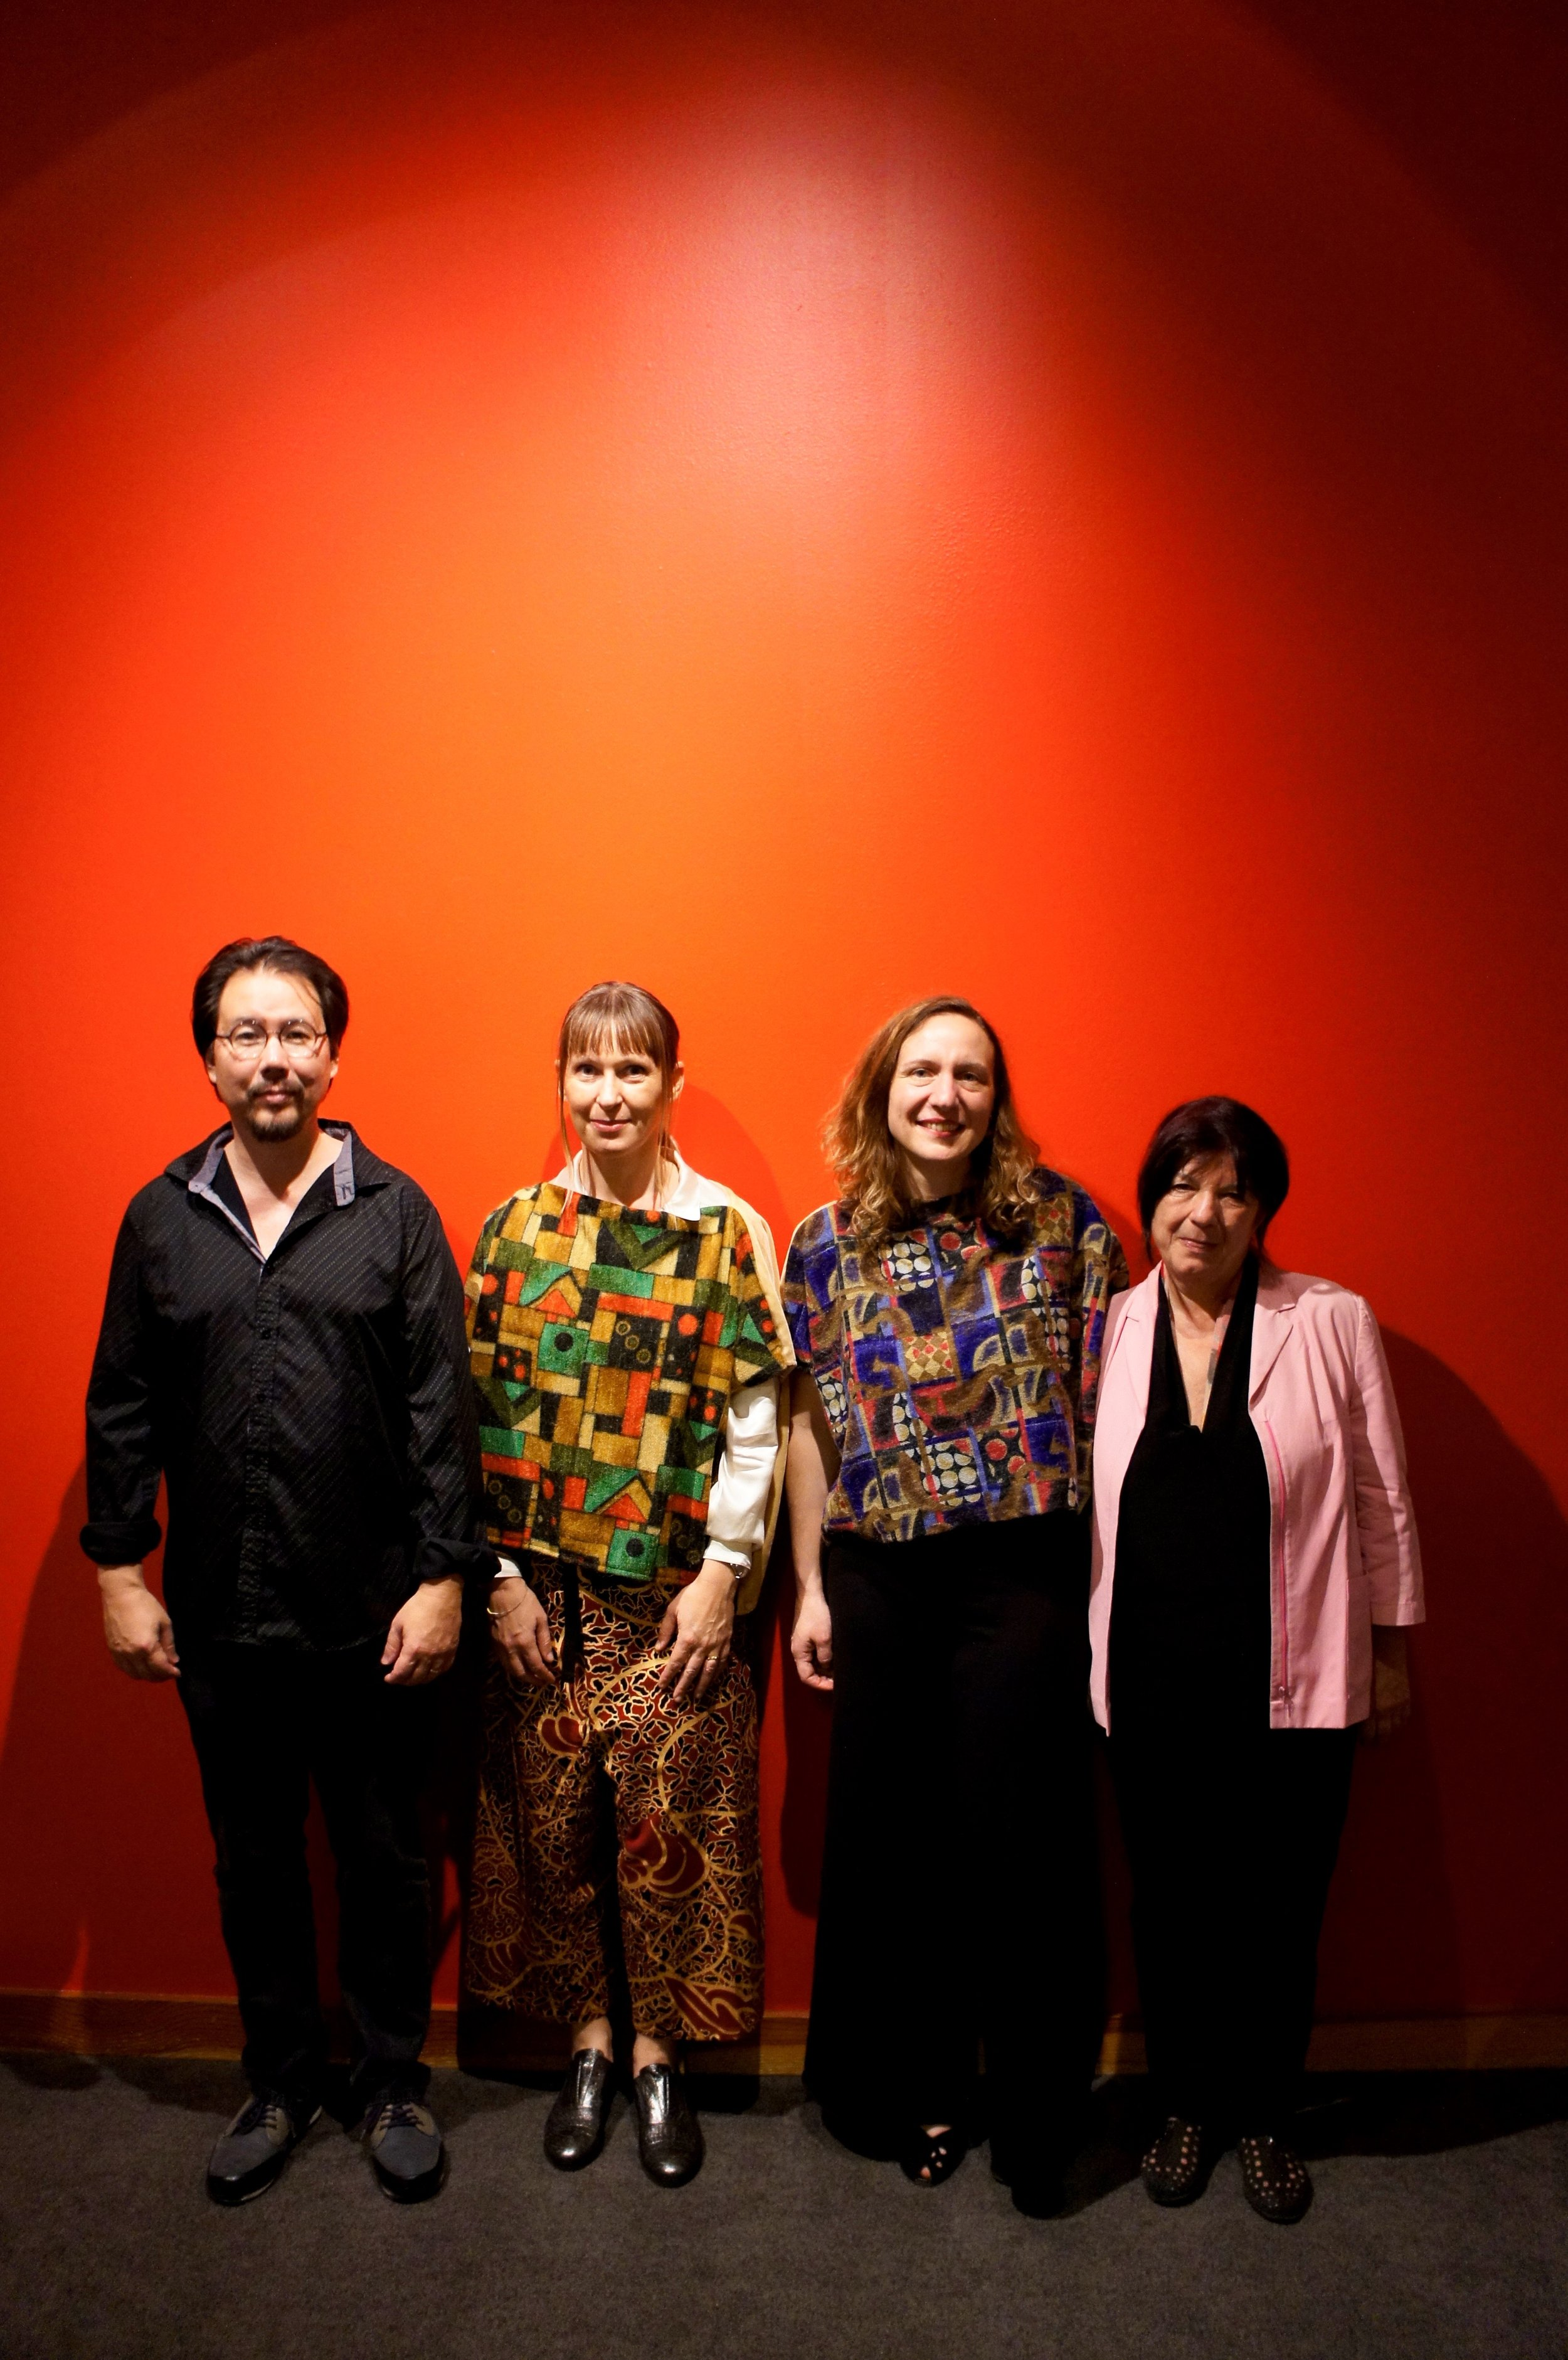 from left to right: eyvind kang, silvia tarozzi (in green block cloth shirt), deborah walker (in blue block cloth shirt), pascale criton